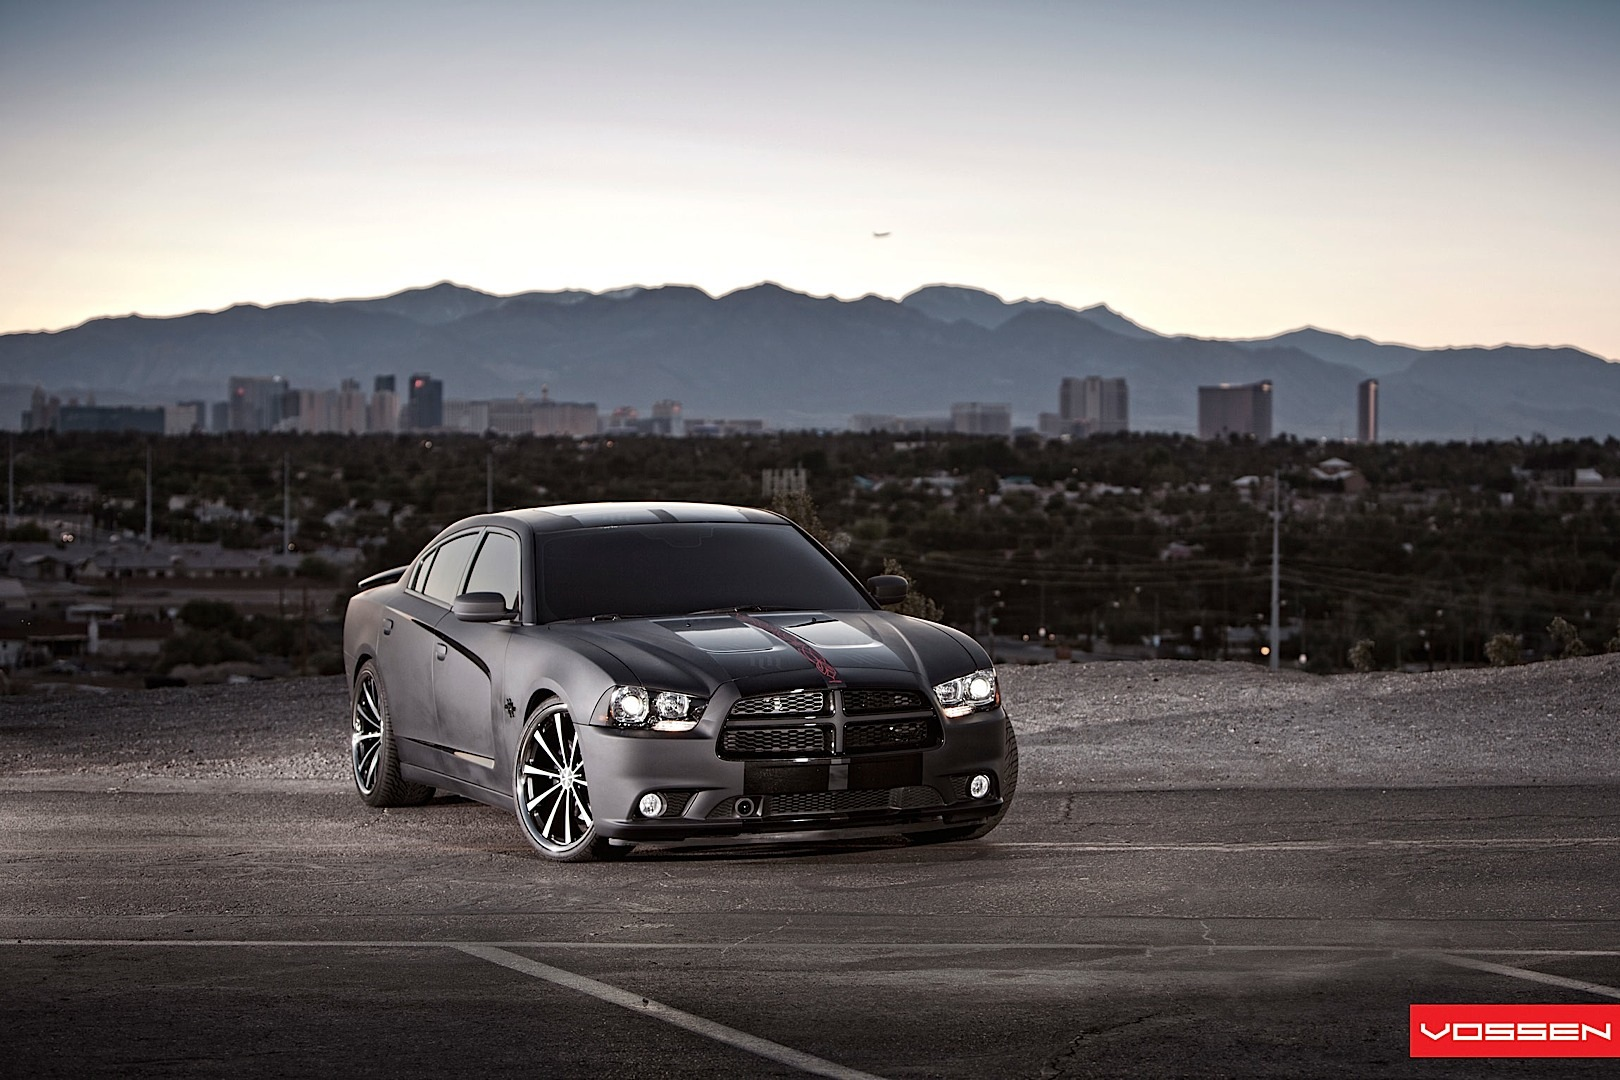 Dodge Charger Gets Matte Black Wrap And Vossen Wheels